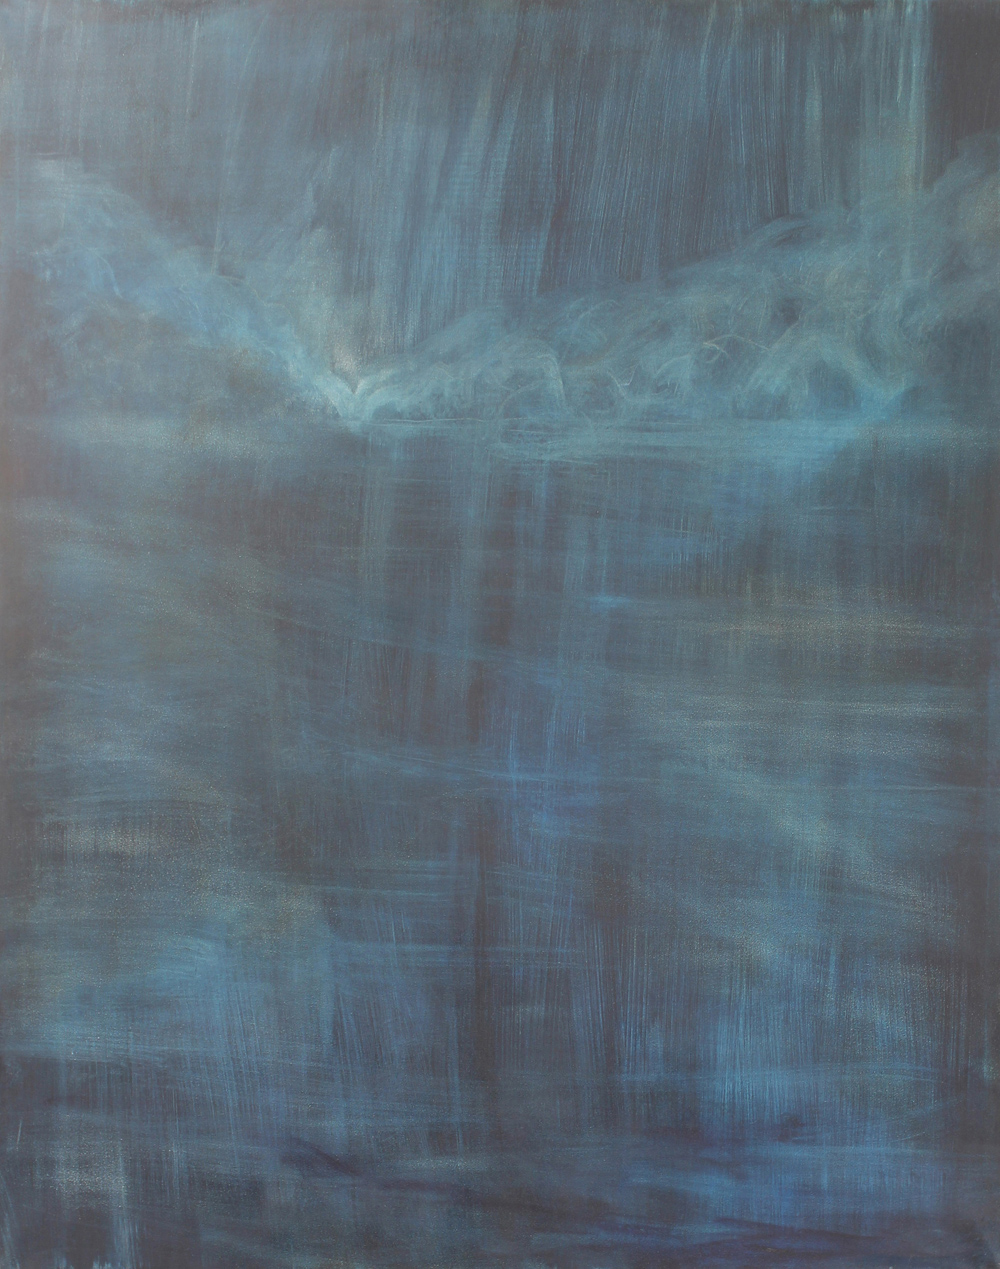 Sleepwalker, 2014, oil on canvas, 150 x 120cm